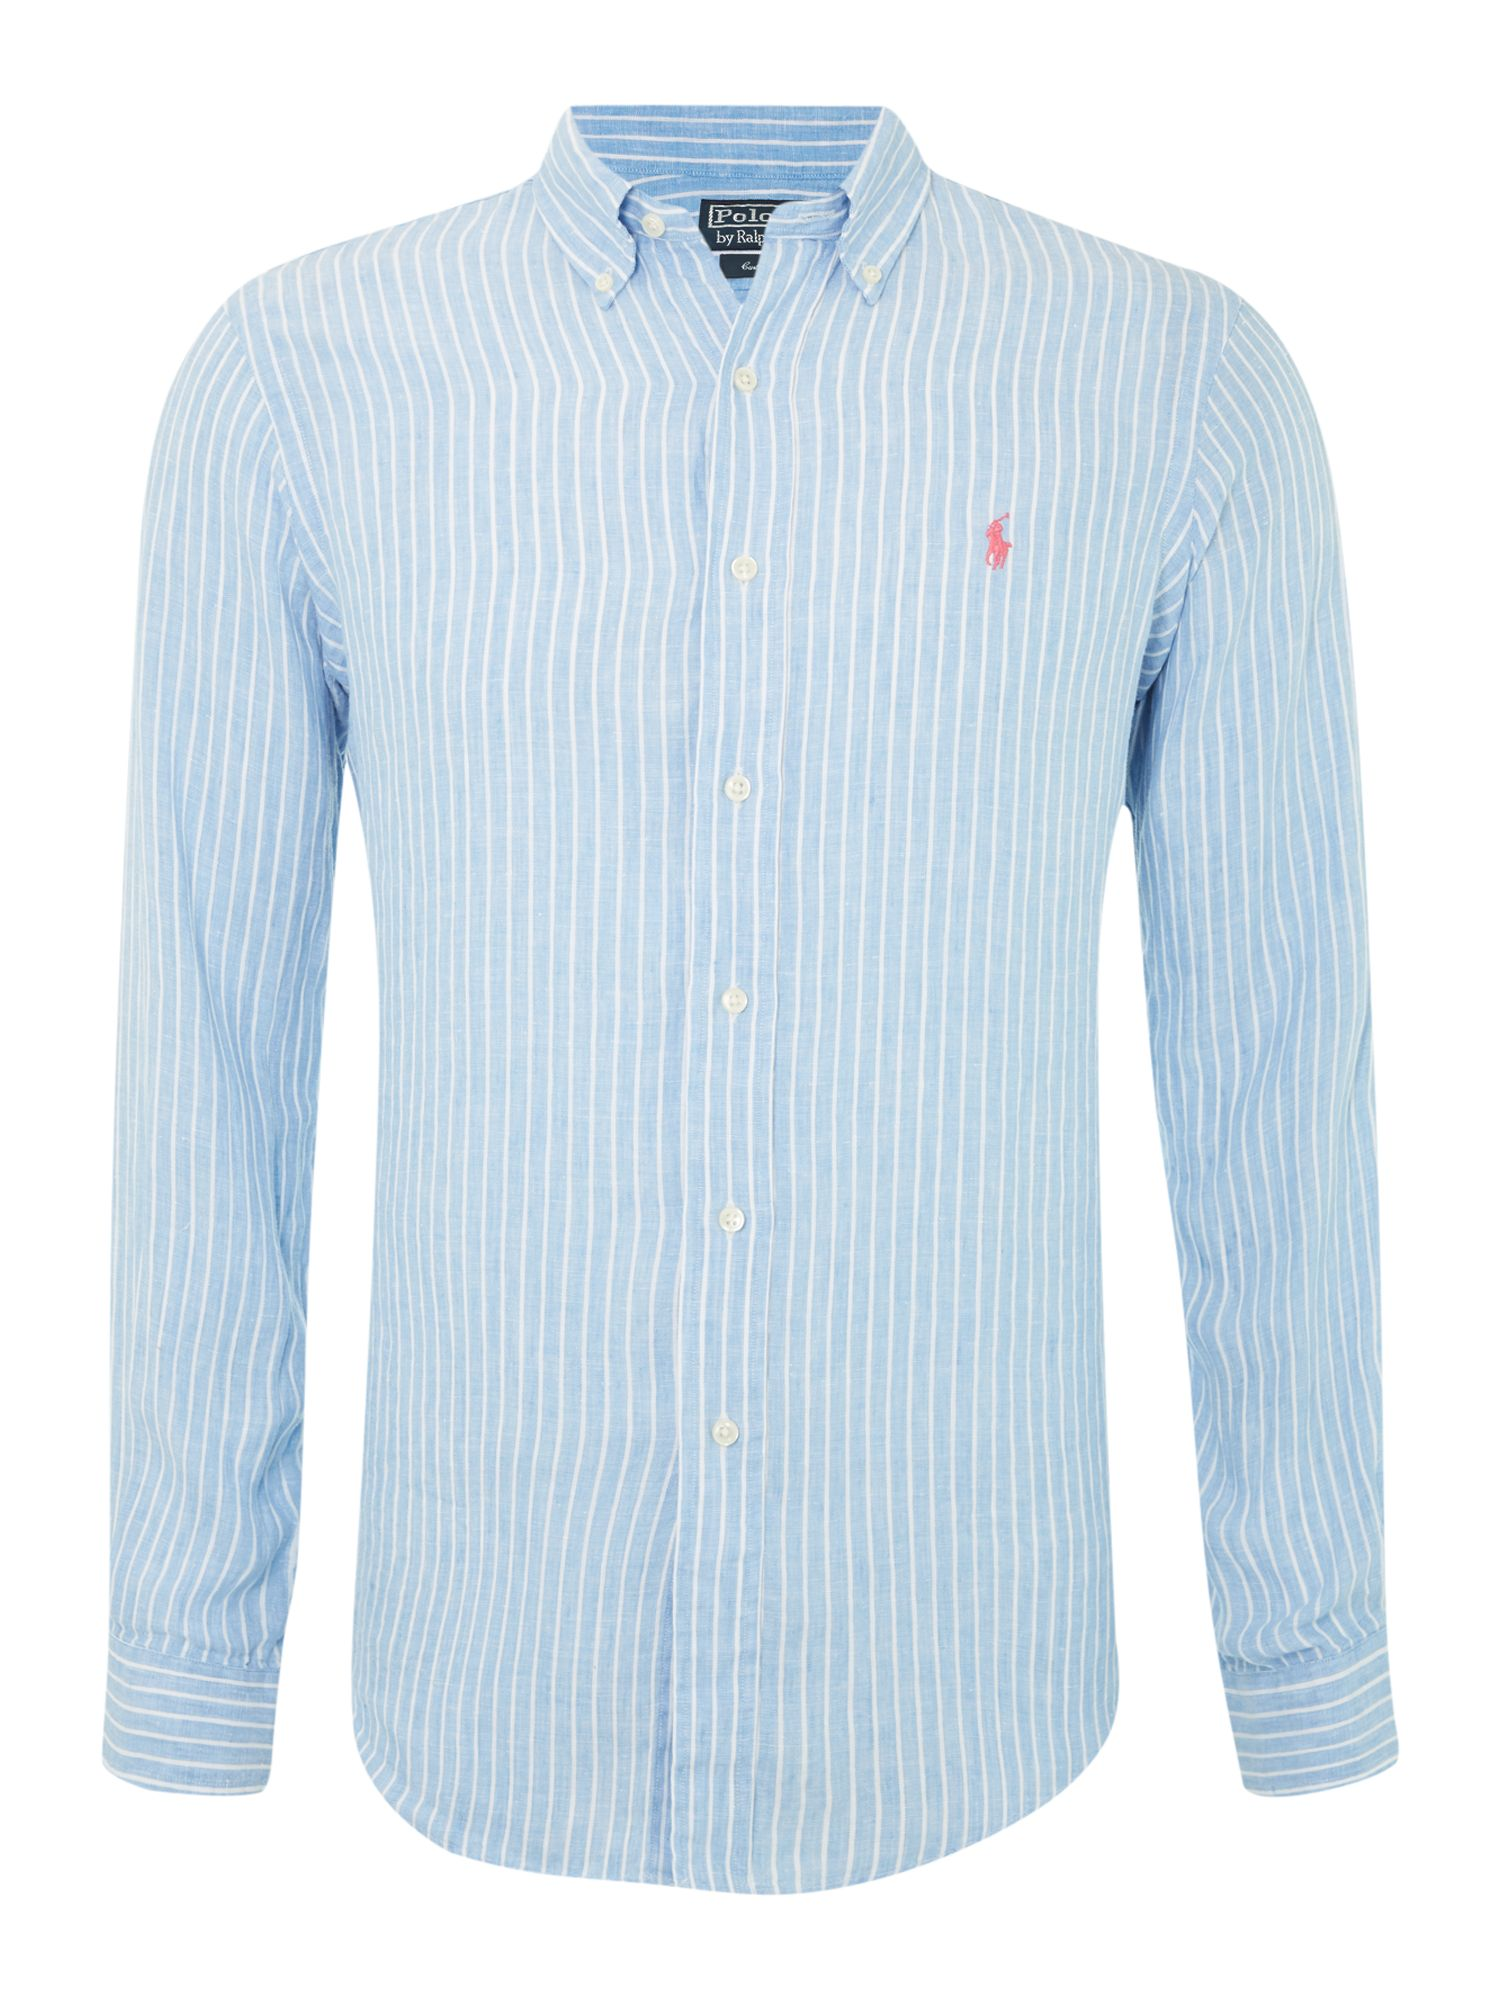 Polo Ralph Lauren Long Sleeved Custom Fitted Shirt In Blue